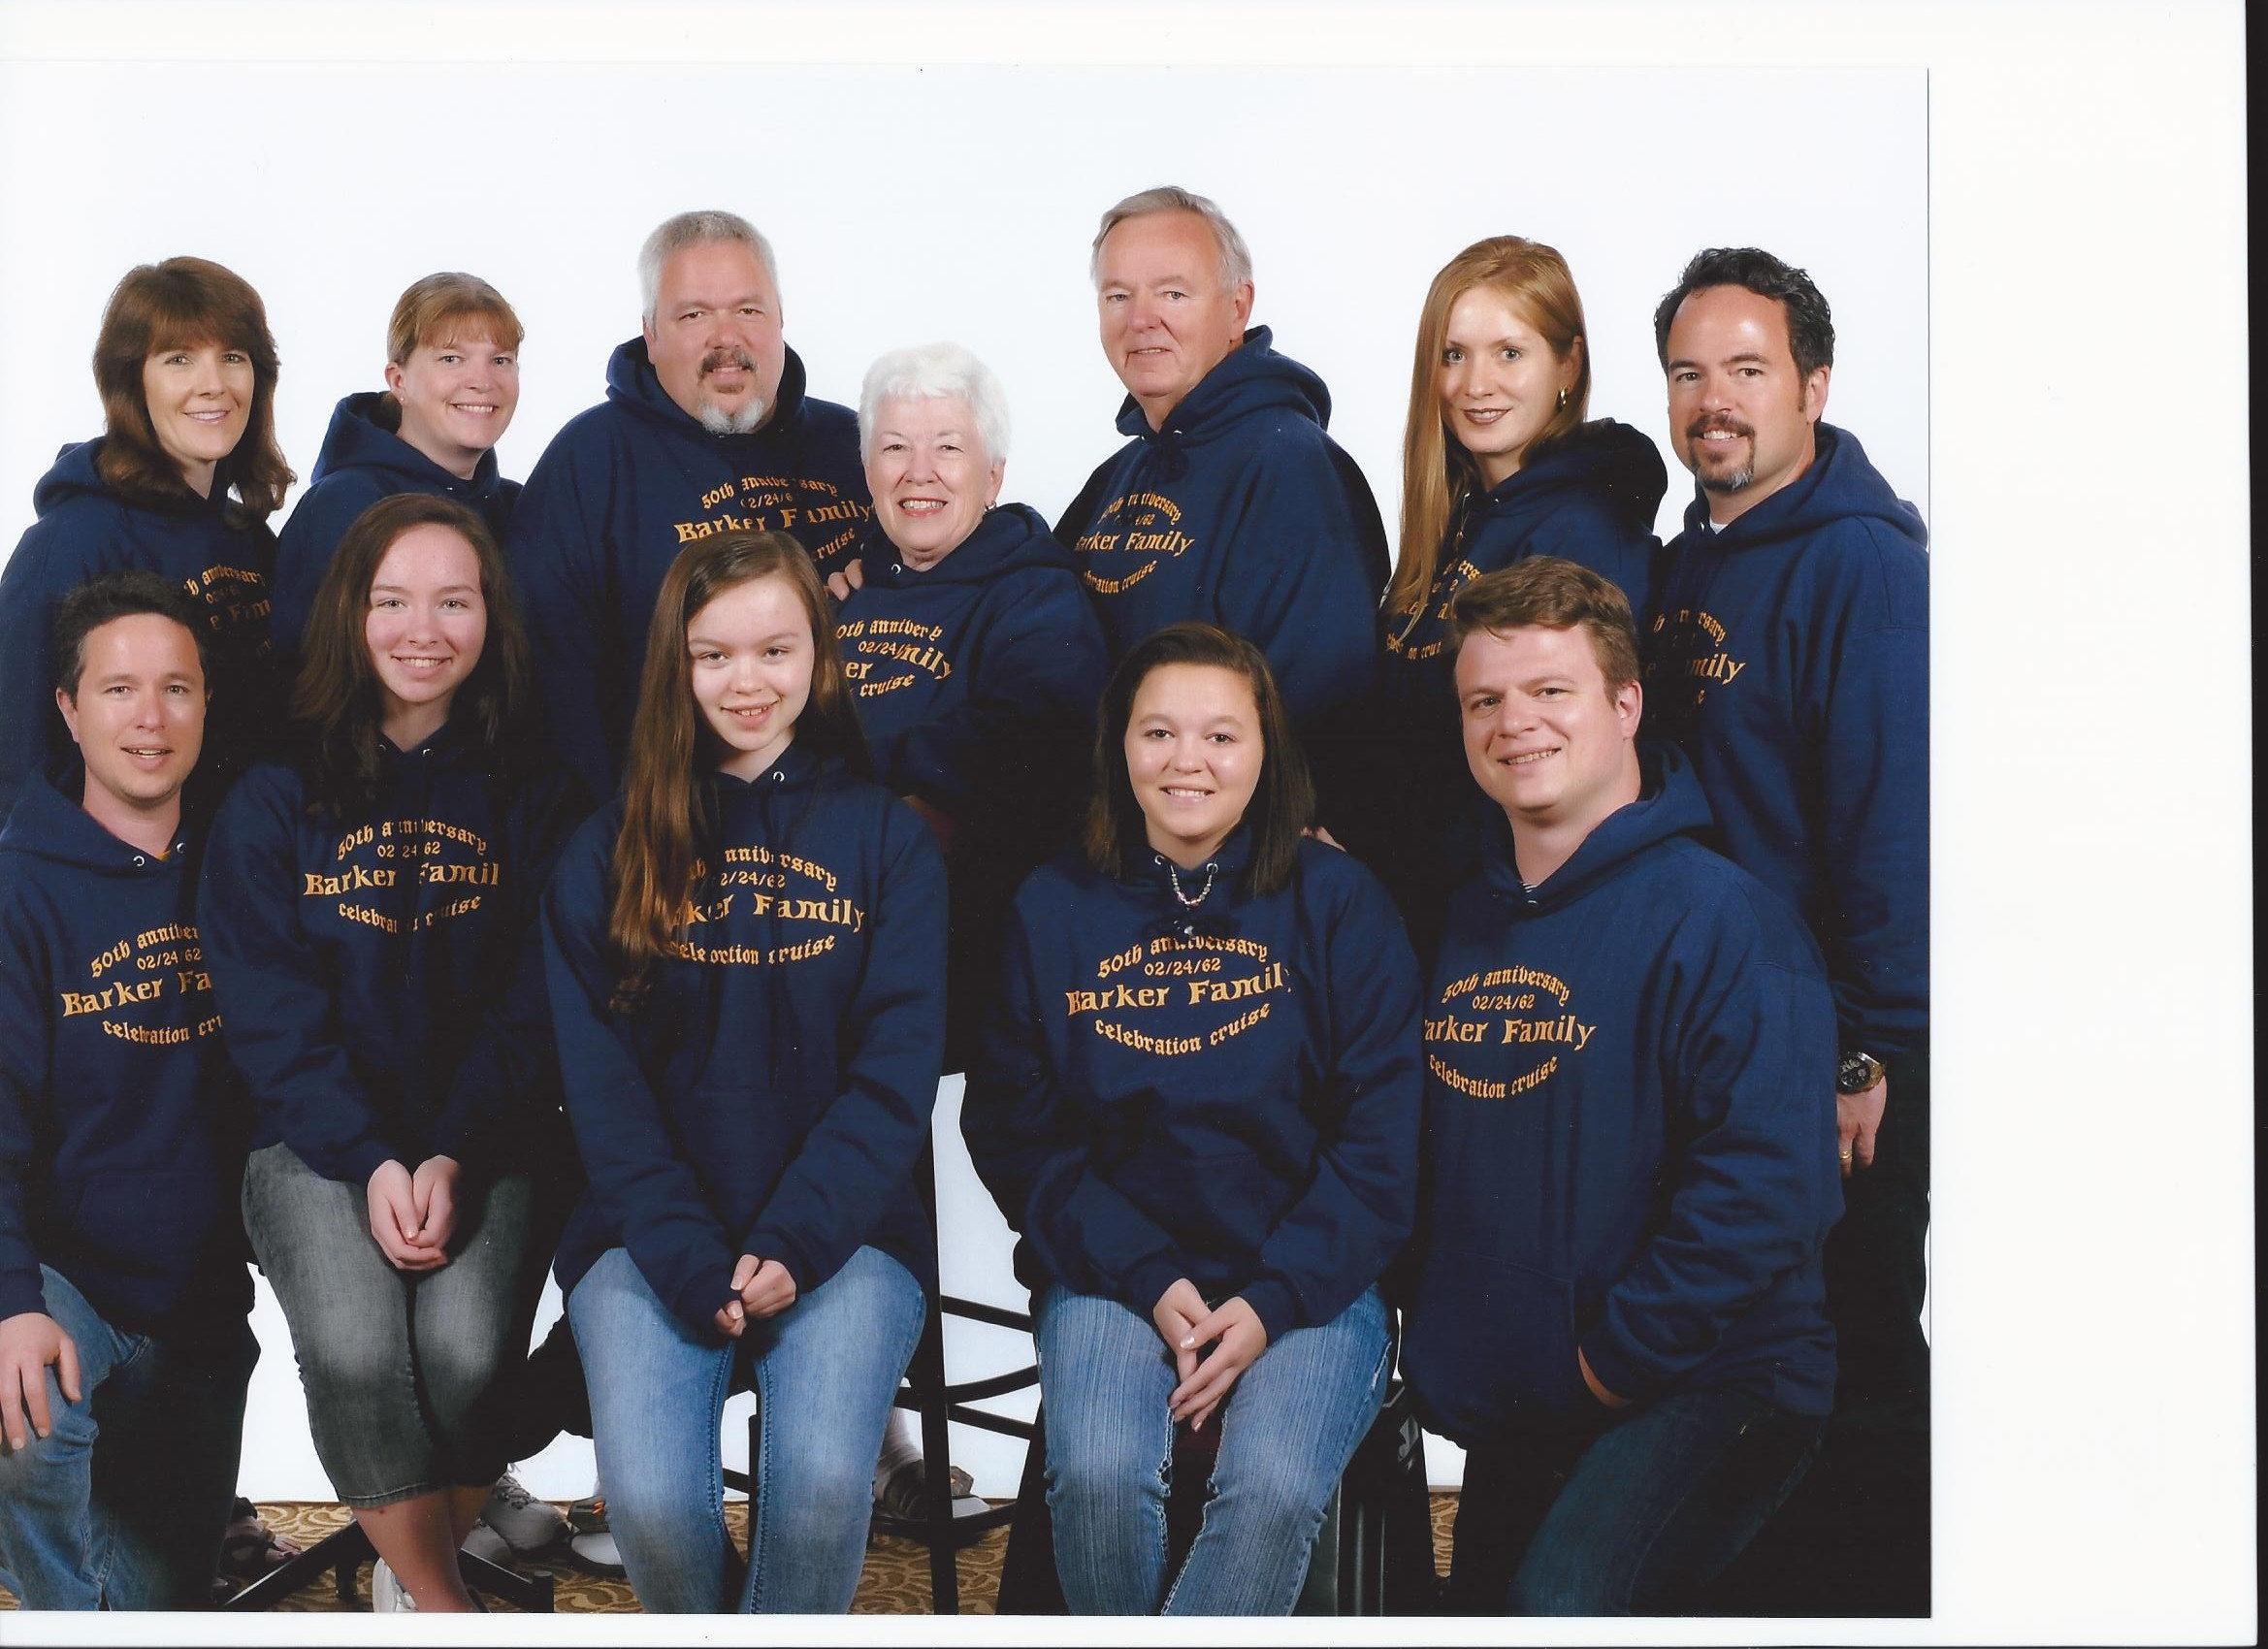 Custom T-Shirts for Barker Family Celebration Cruise Photo - Shirt ... 36f0b3b7cf13